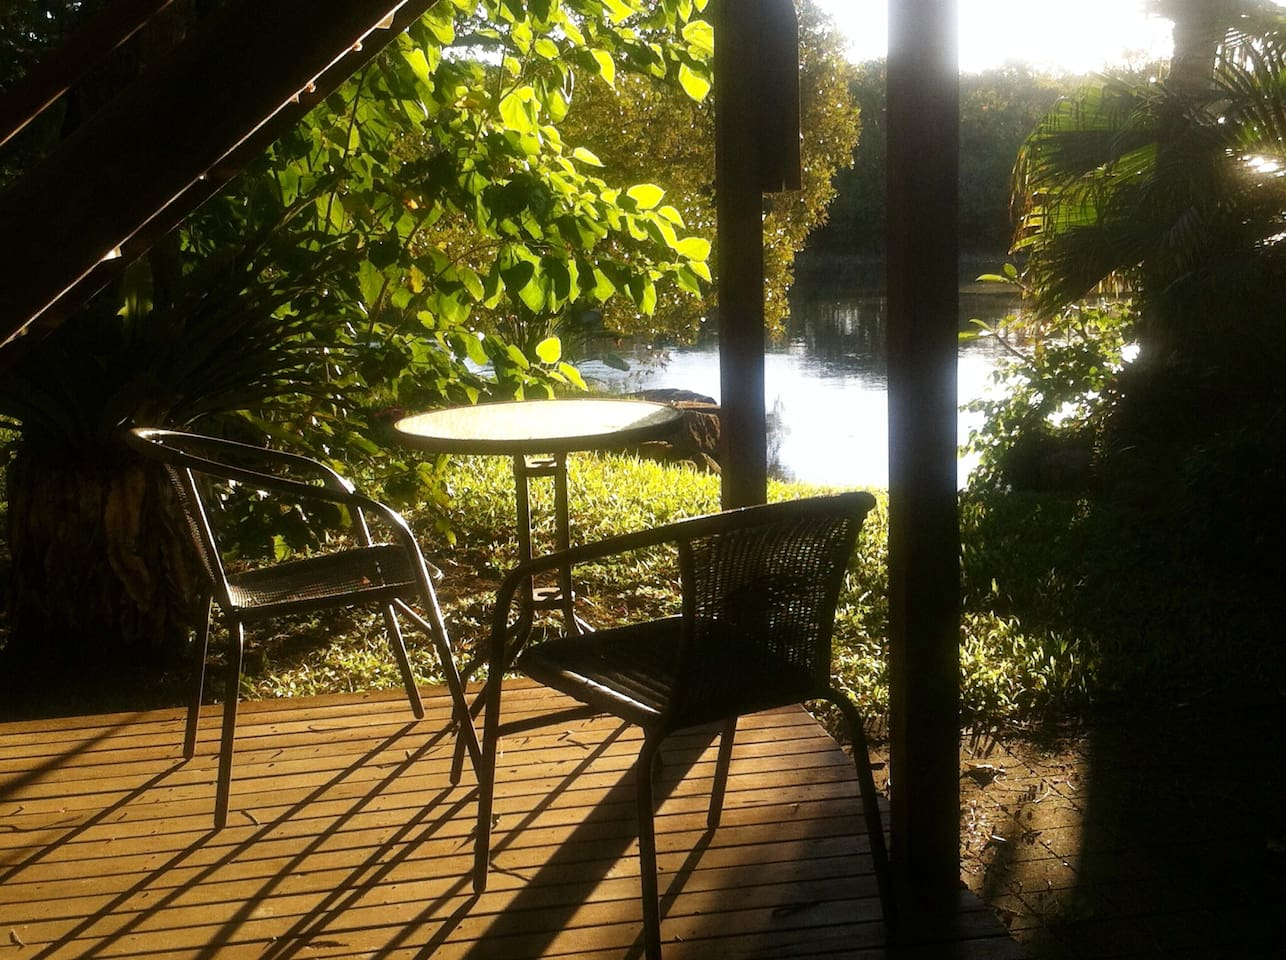 Tranquil creek frontage. Ideal for eating , reading, contemplating or all three :)